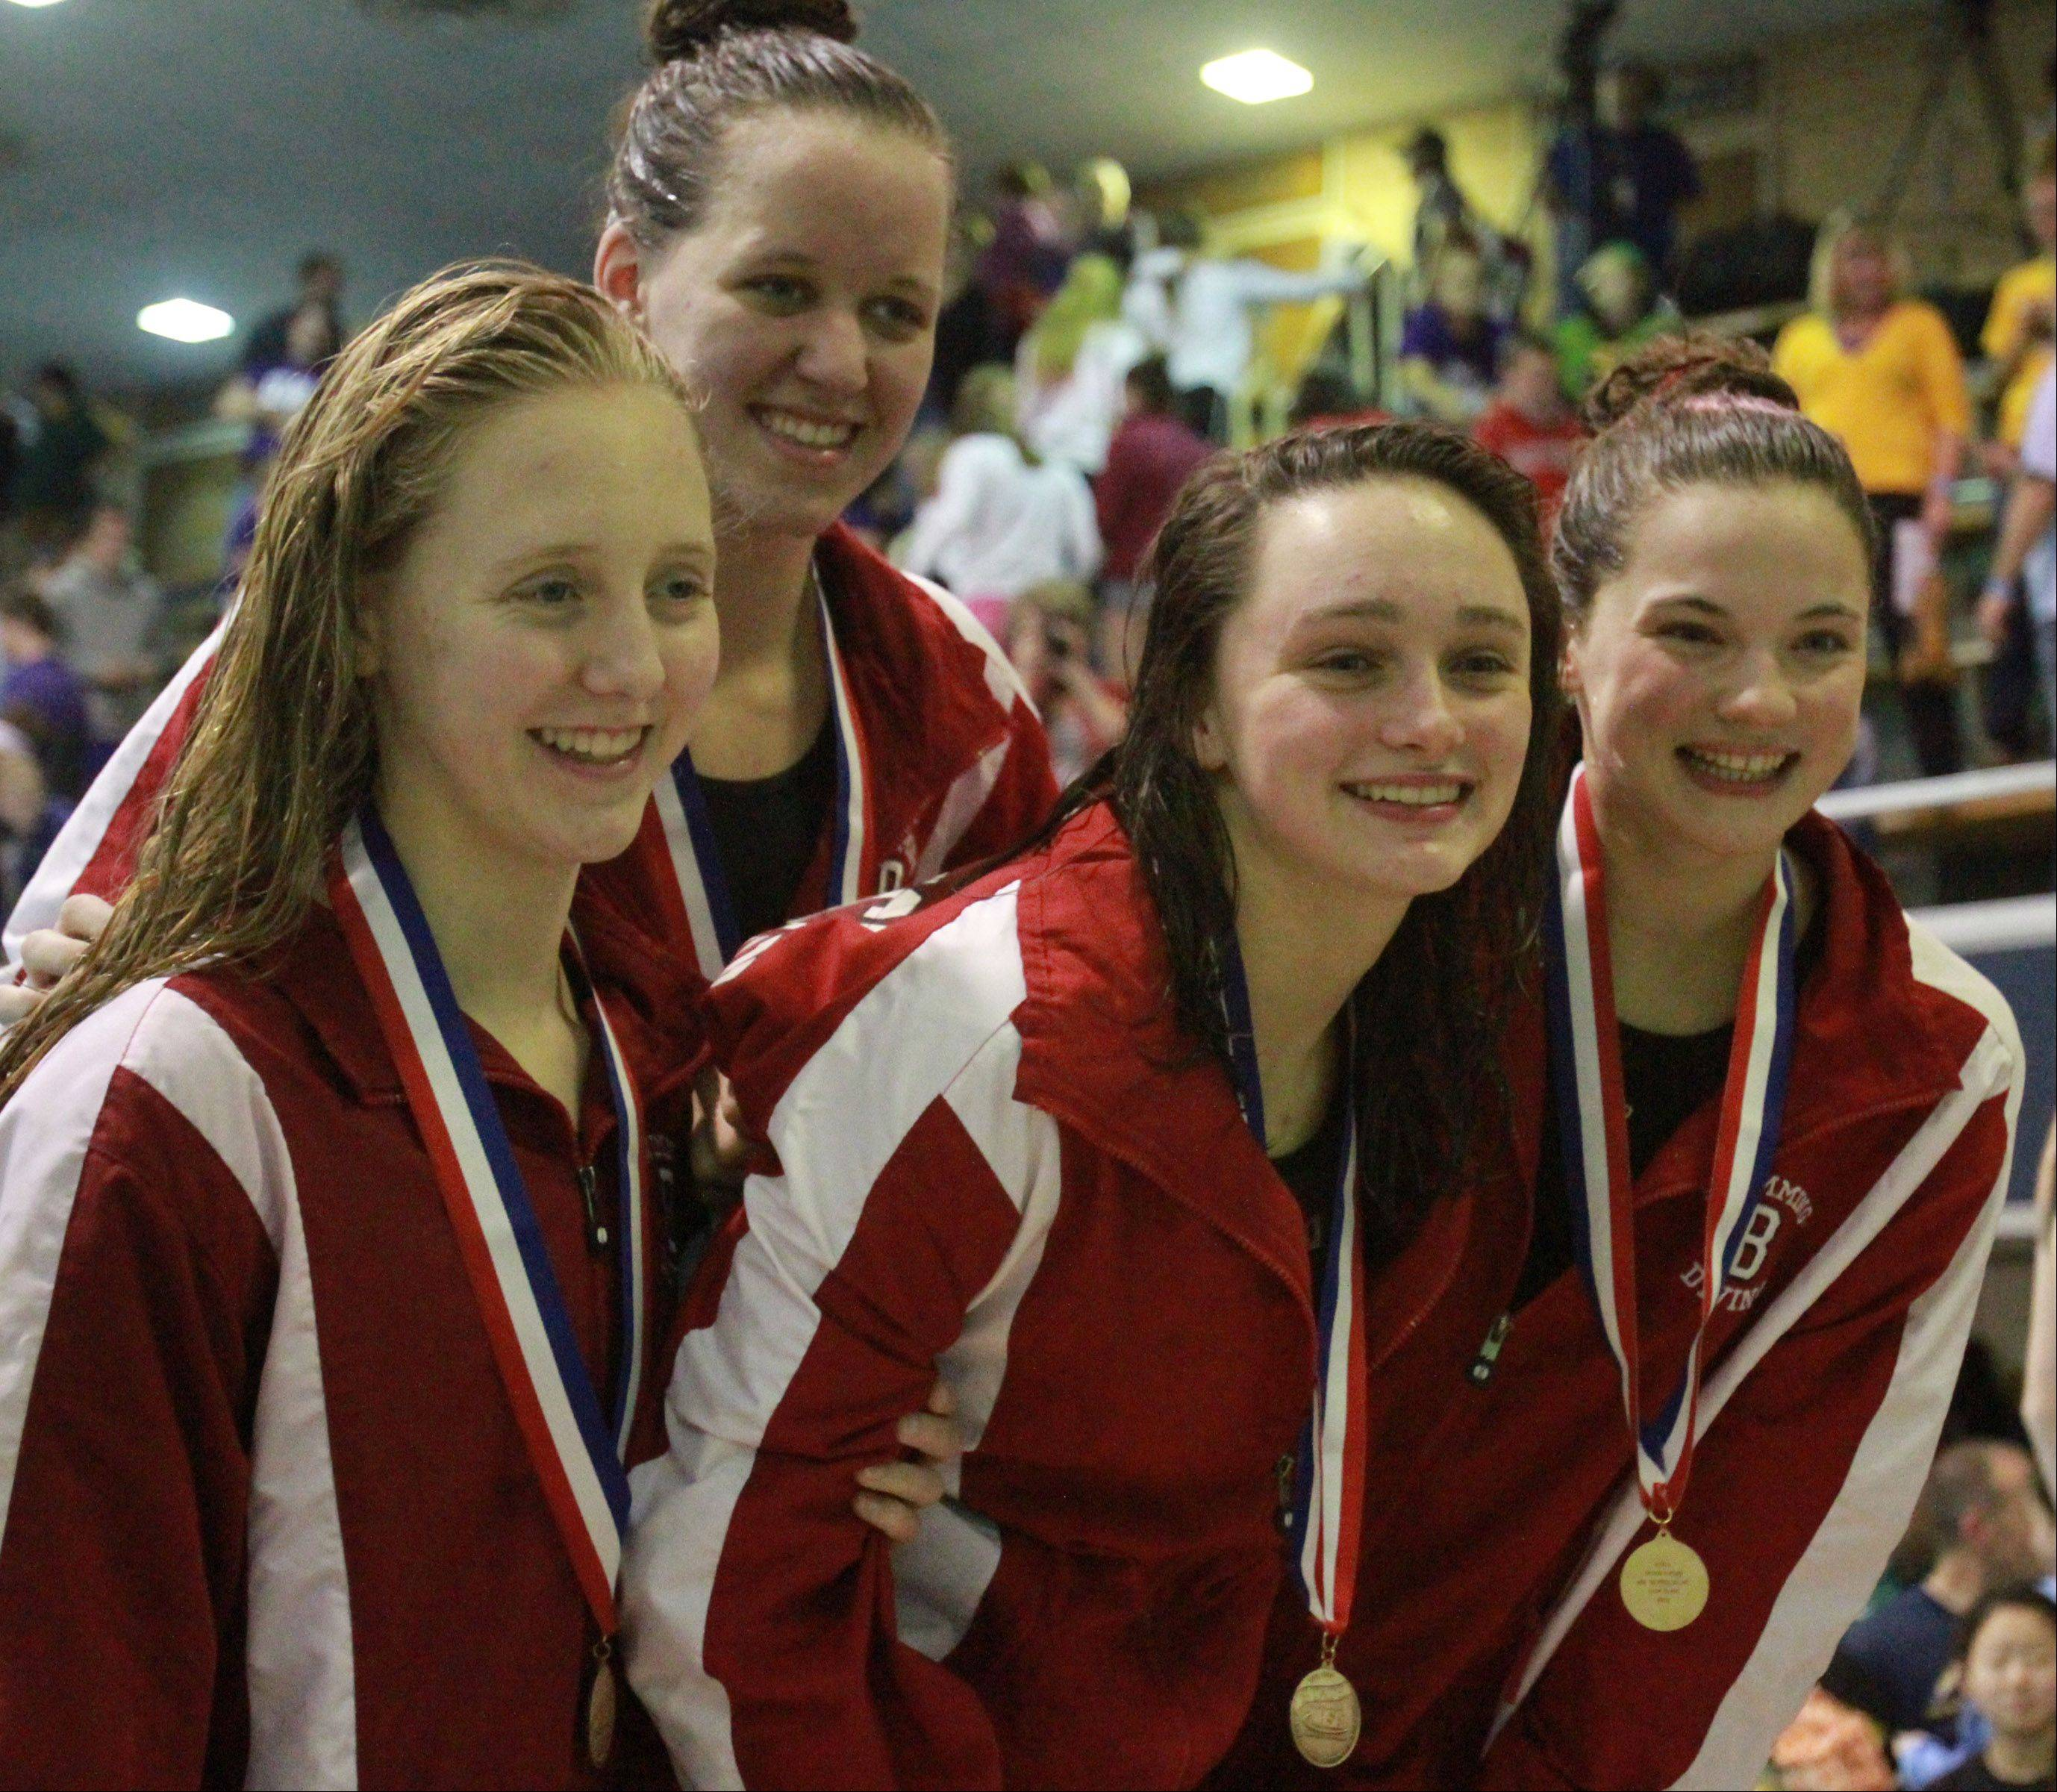 Barrington�s Emma Barnett, Mekenna Scheitlin, Kristen Jacobsen, and Kayla Widdowson placed eleventh in the 400-yard freestyle relay at the IHSA state championships in Evanston on Saturday.